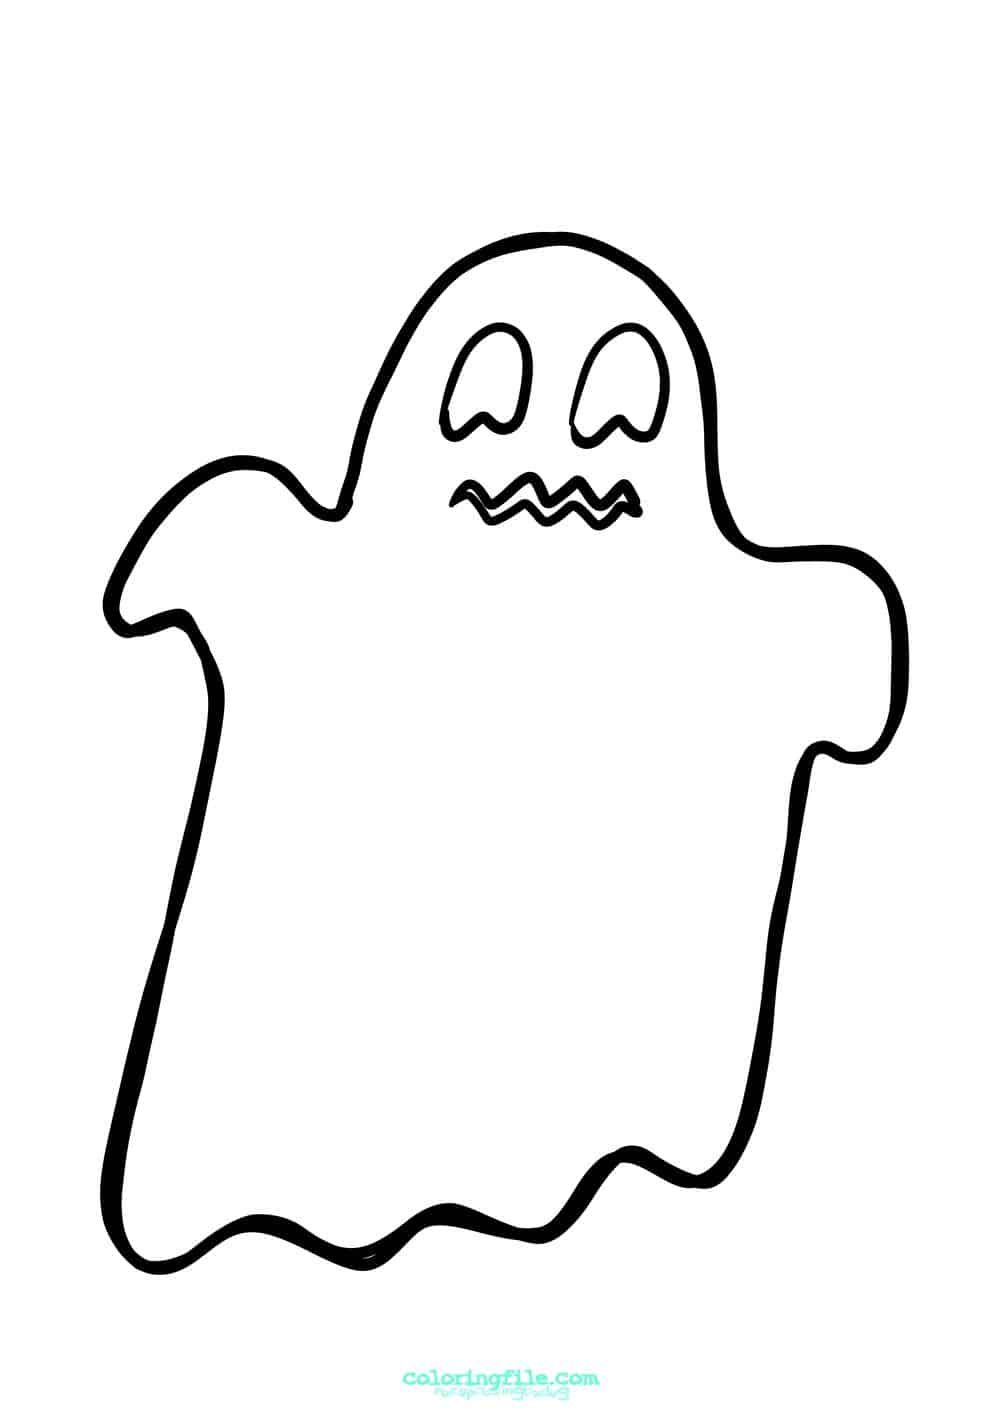 Halloween Ghost Coloring Pages From 100 Halloween Coloring Pages